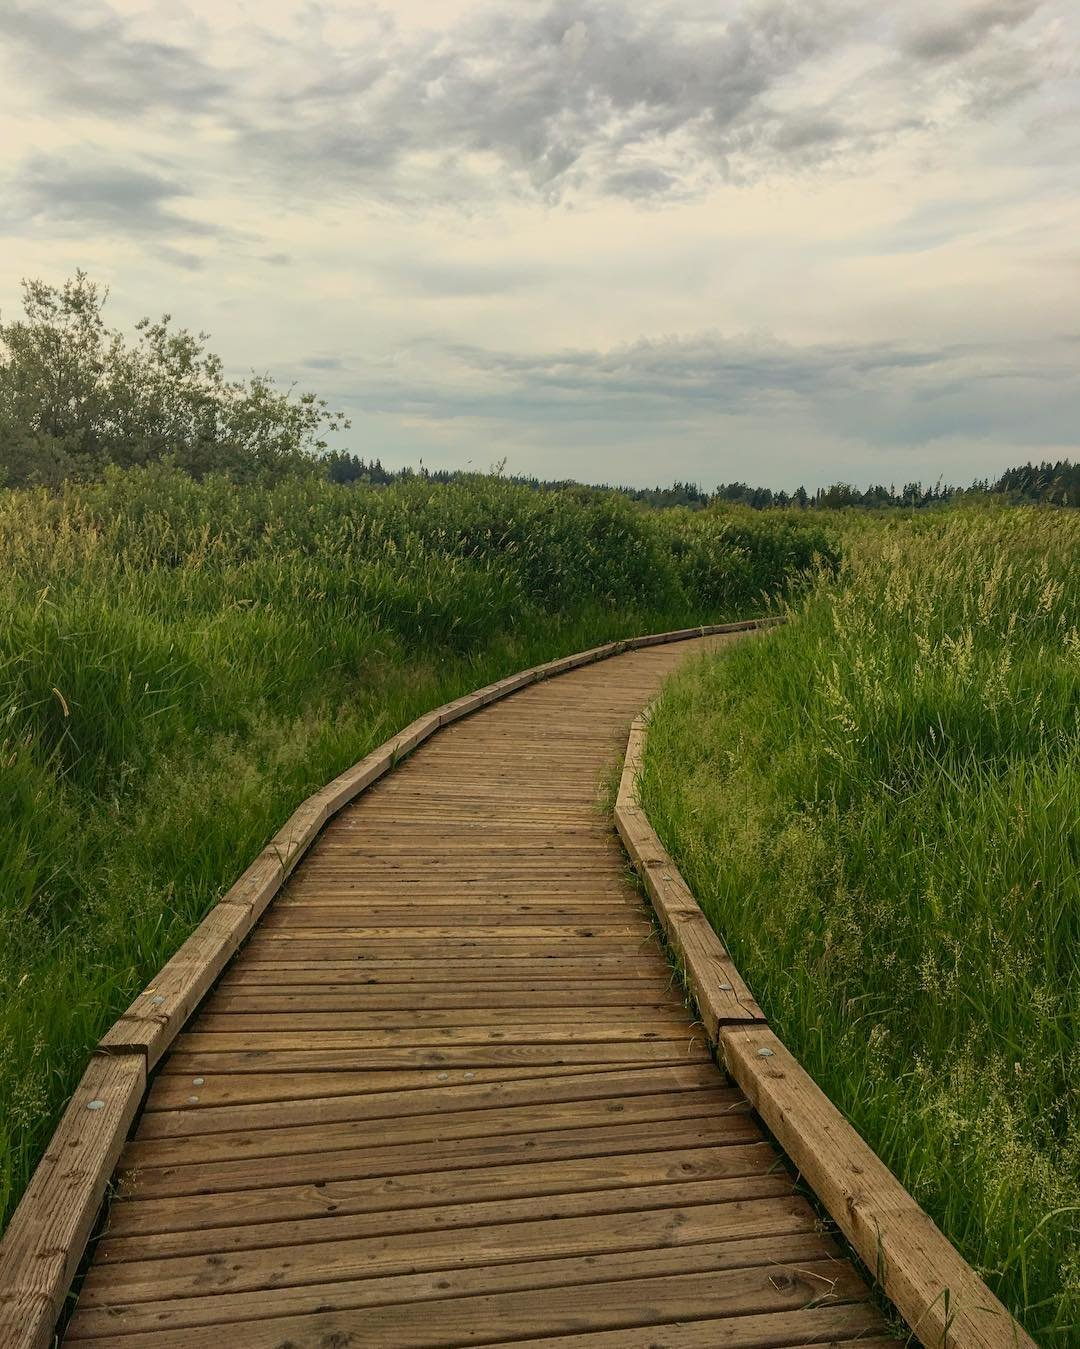 View of the boardwalk path along the North Creek Trail in Bothell, Washington.